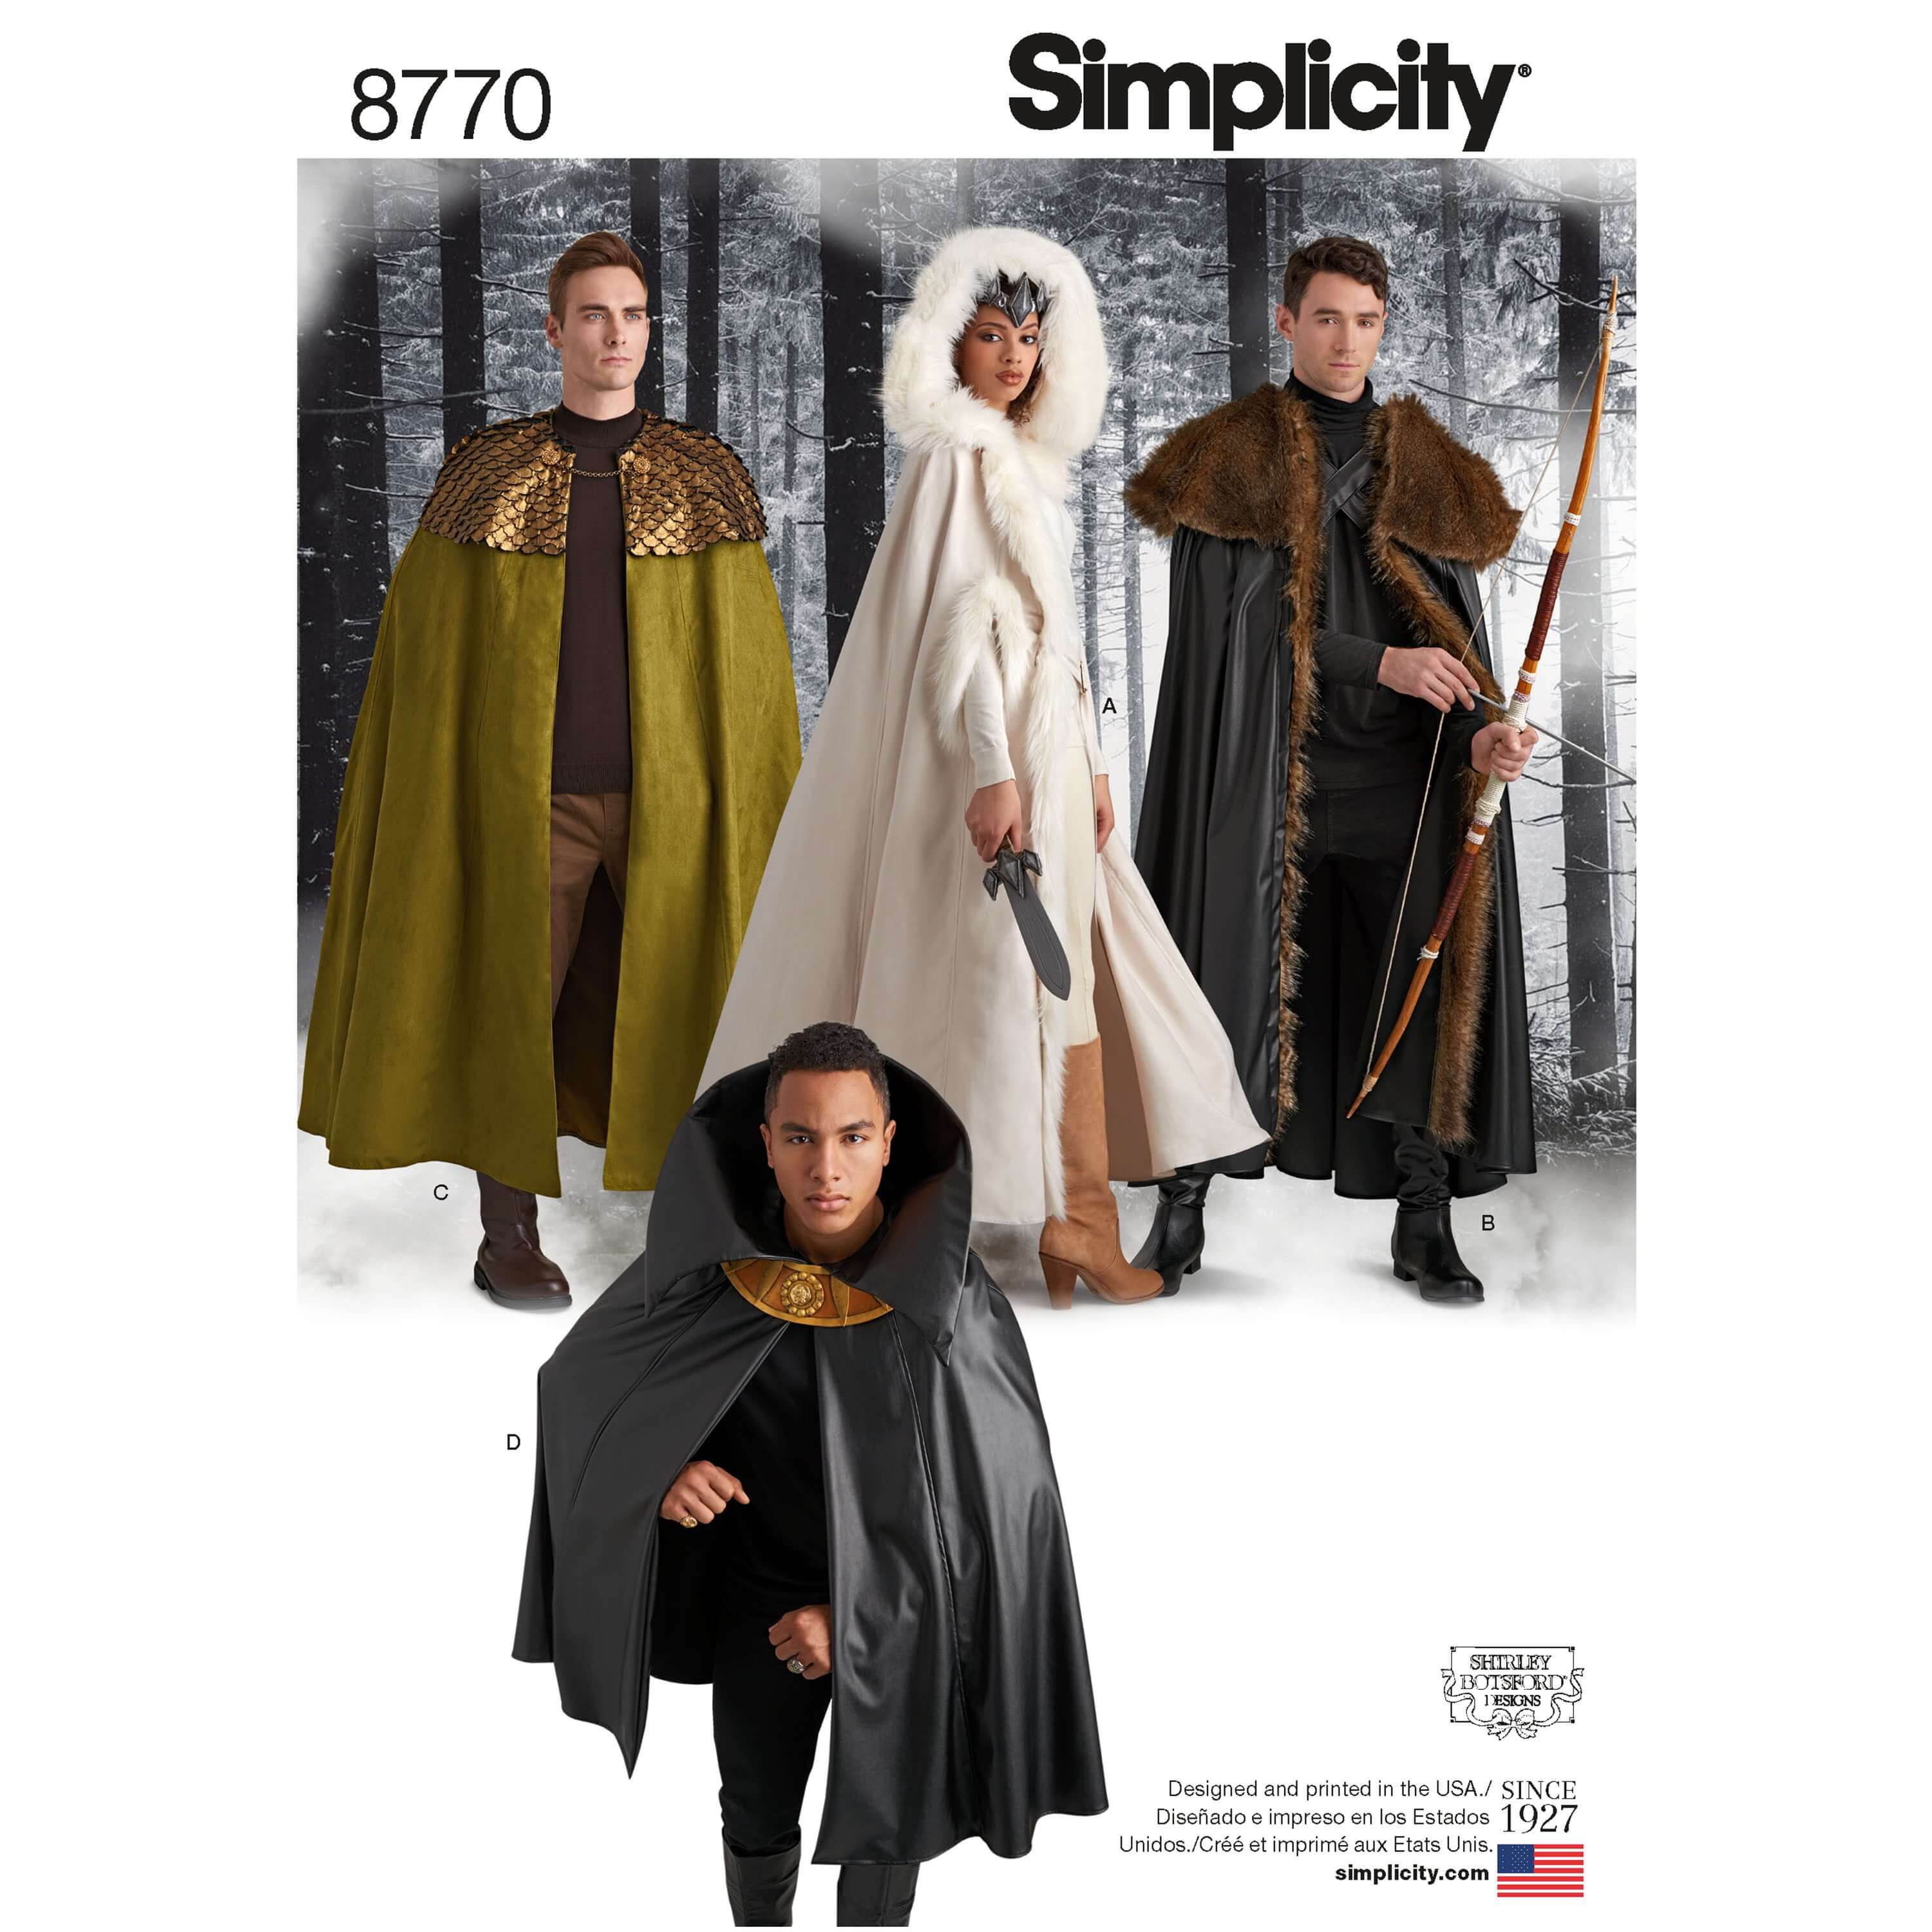 Simplicity Sewing Pattern 8770 Adult Unisex Costume Cosplay Cloaks and Capes